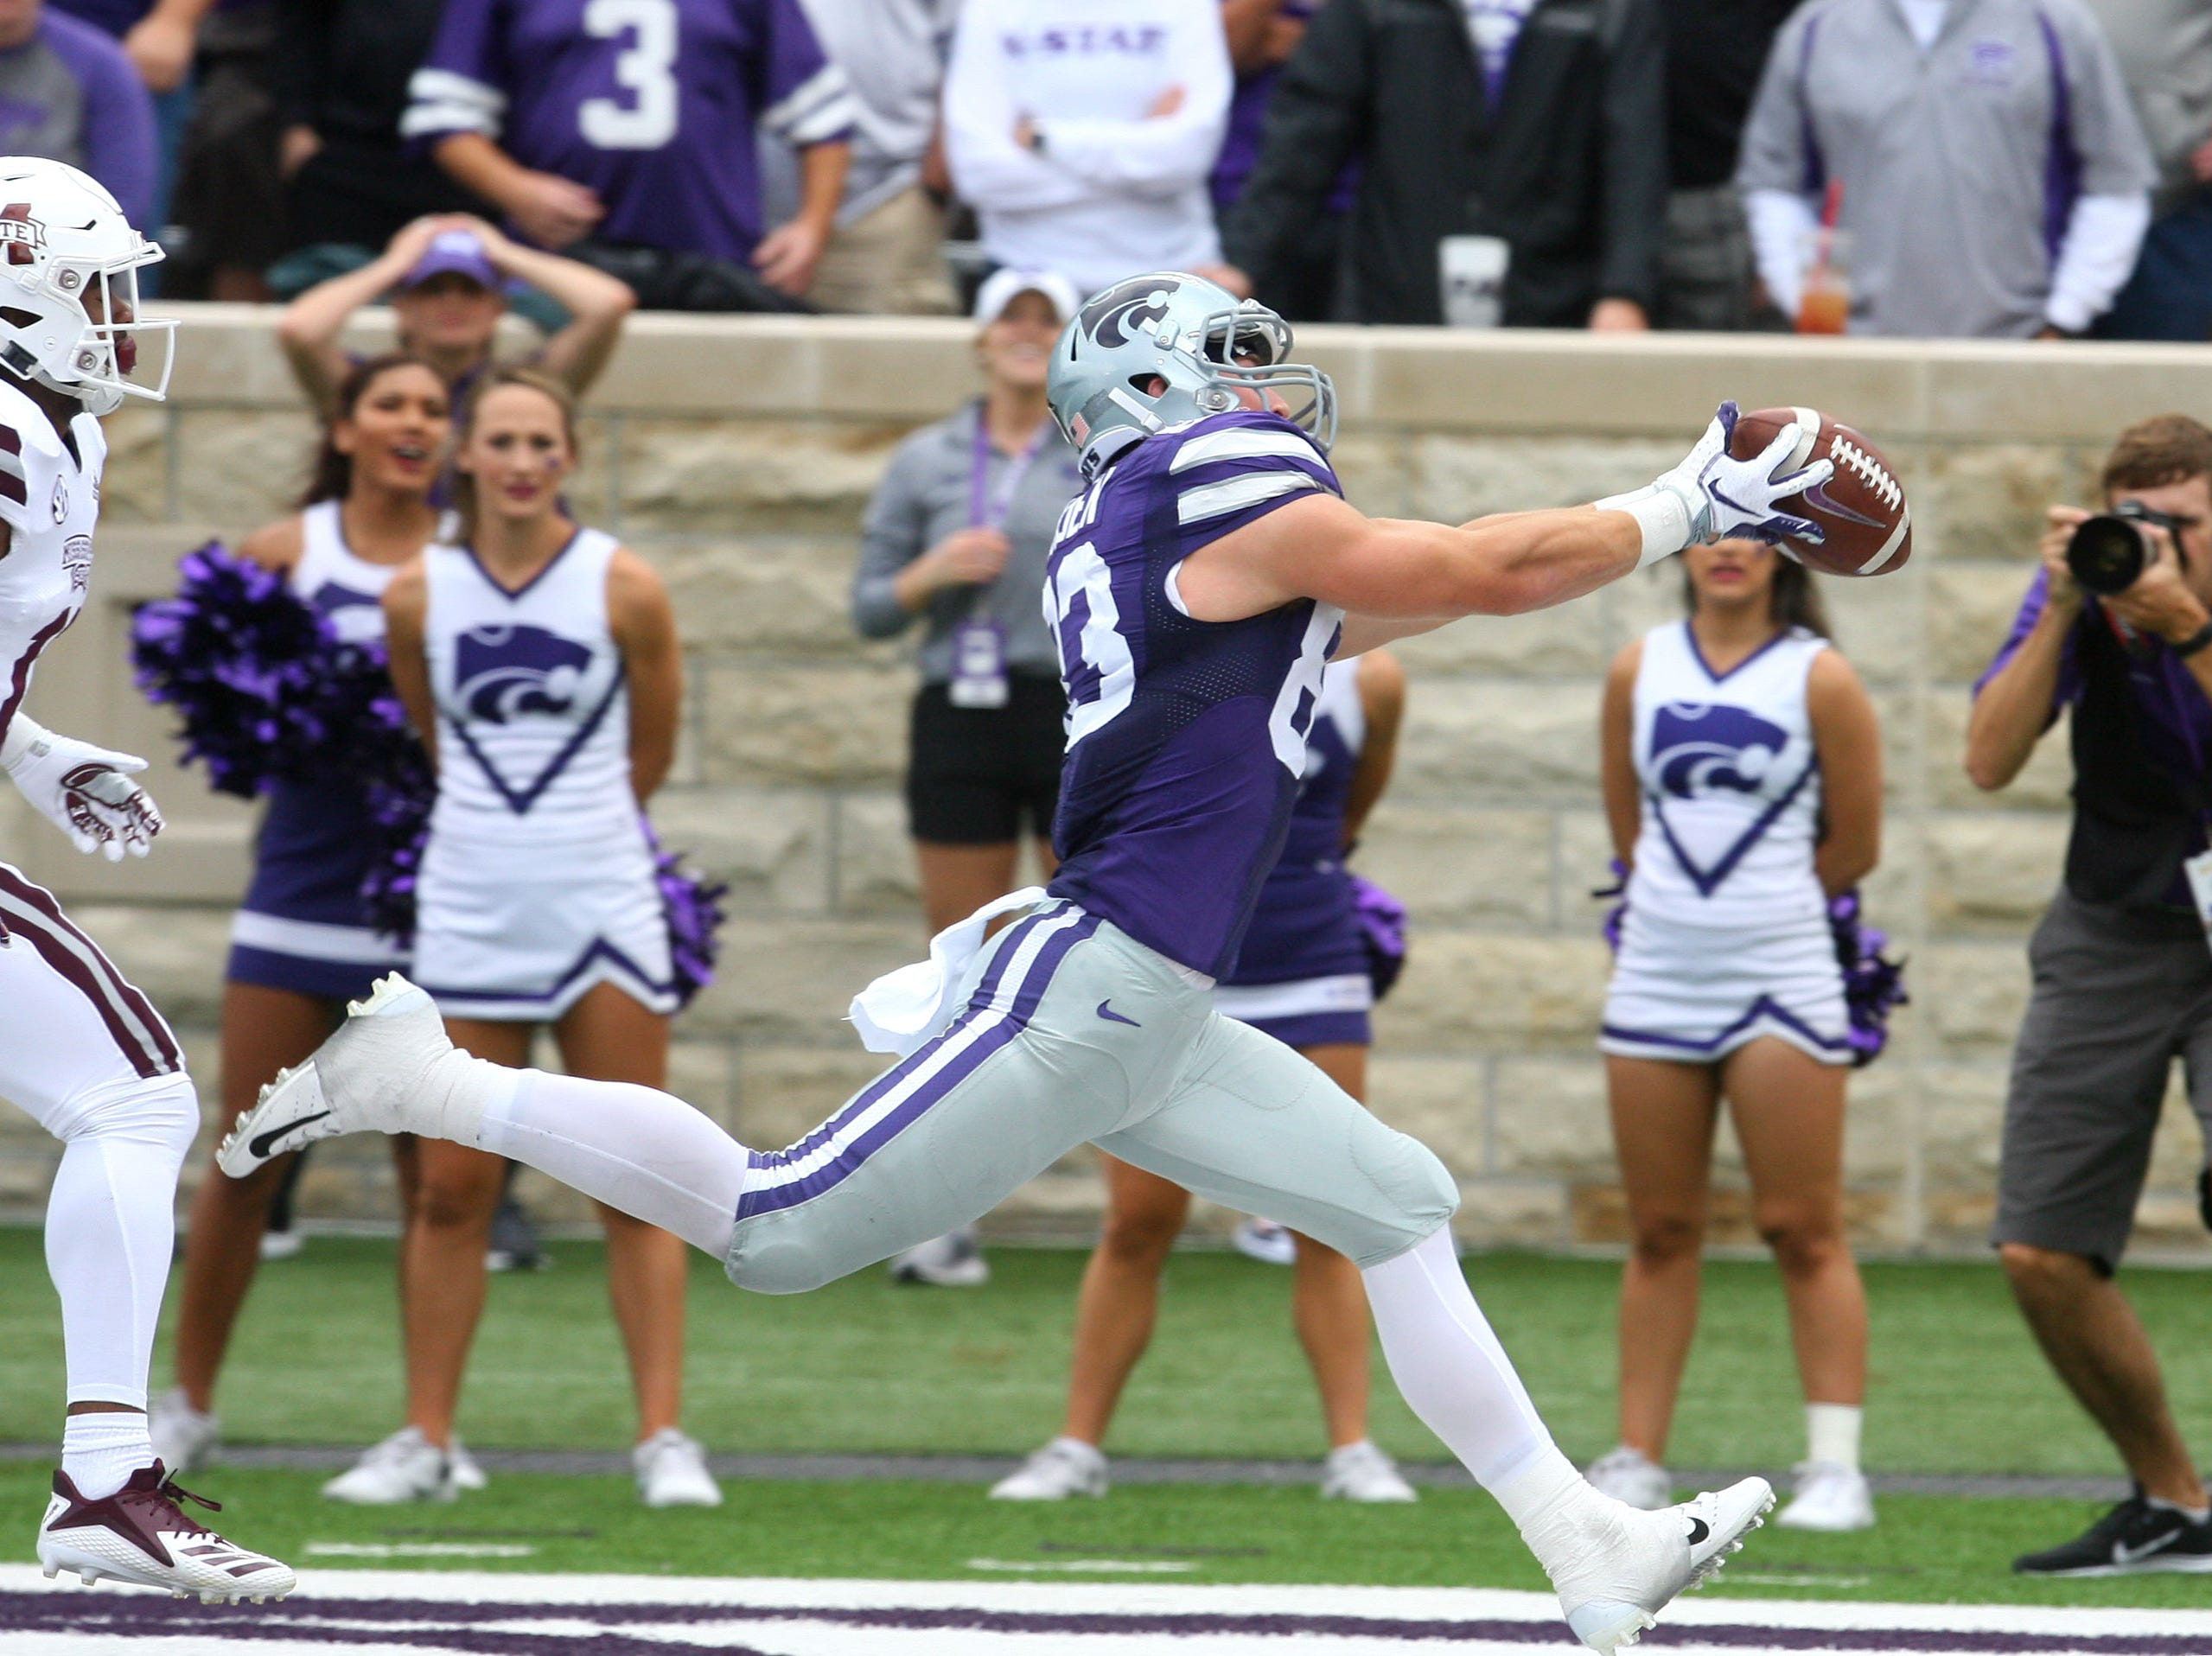 Kansas State Wildcats wide receiver Dalton Schoen (83) makes a touchdown catch against Mississippi State Bulldogs safety Jaquarius Landrews (11) during the third quarter at Bill Snyder Family Stadium.